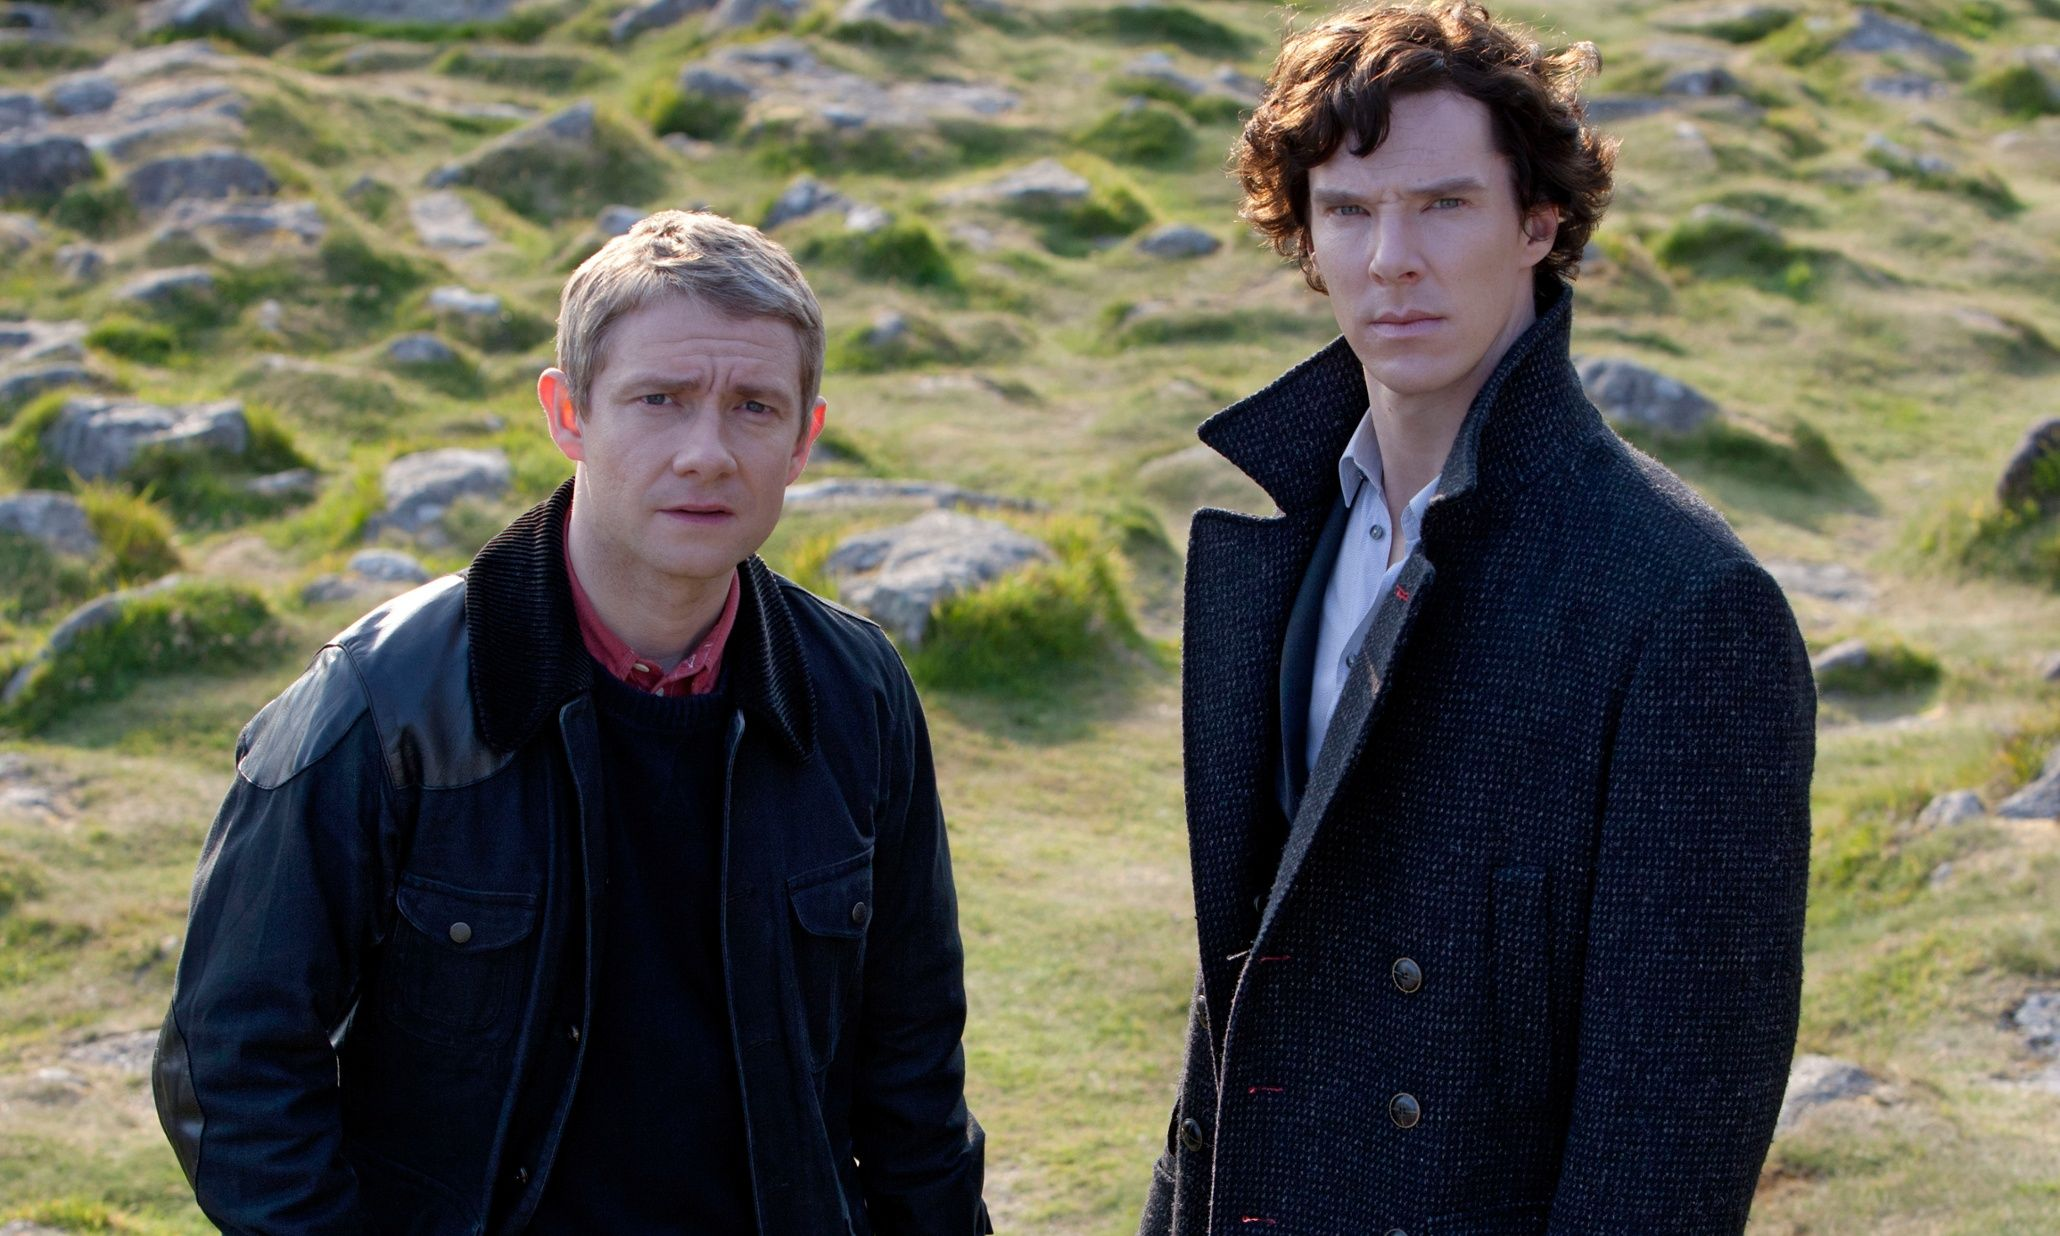 Sherlock co-creator has bad news about revival